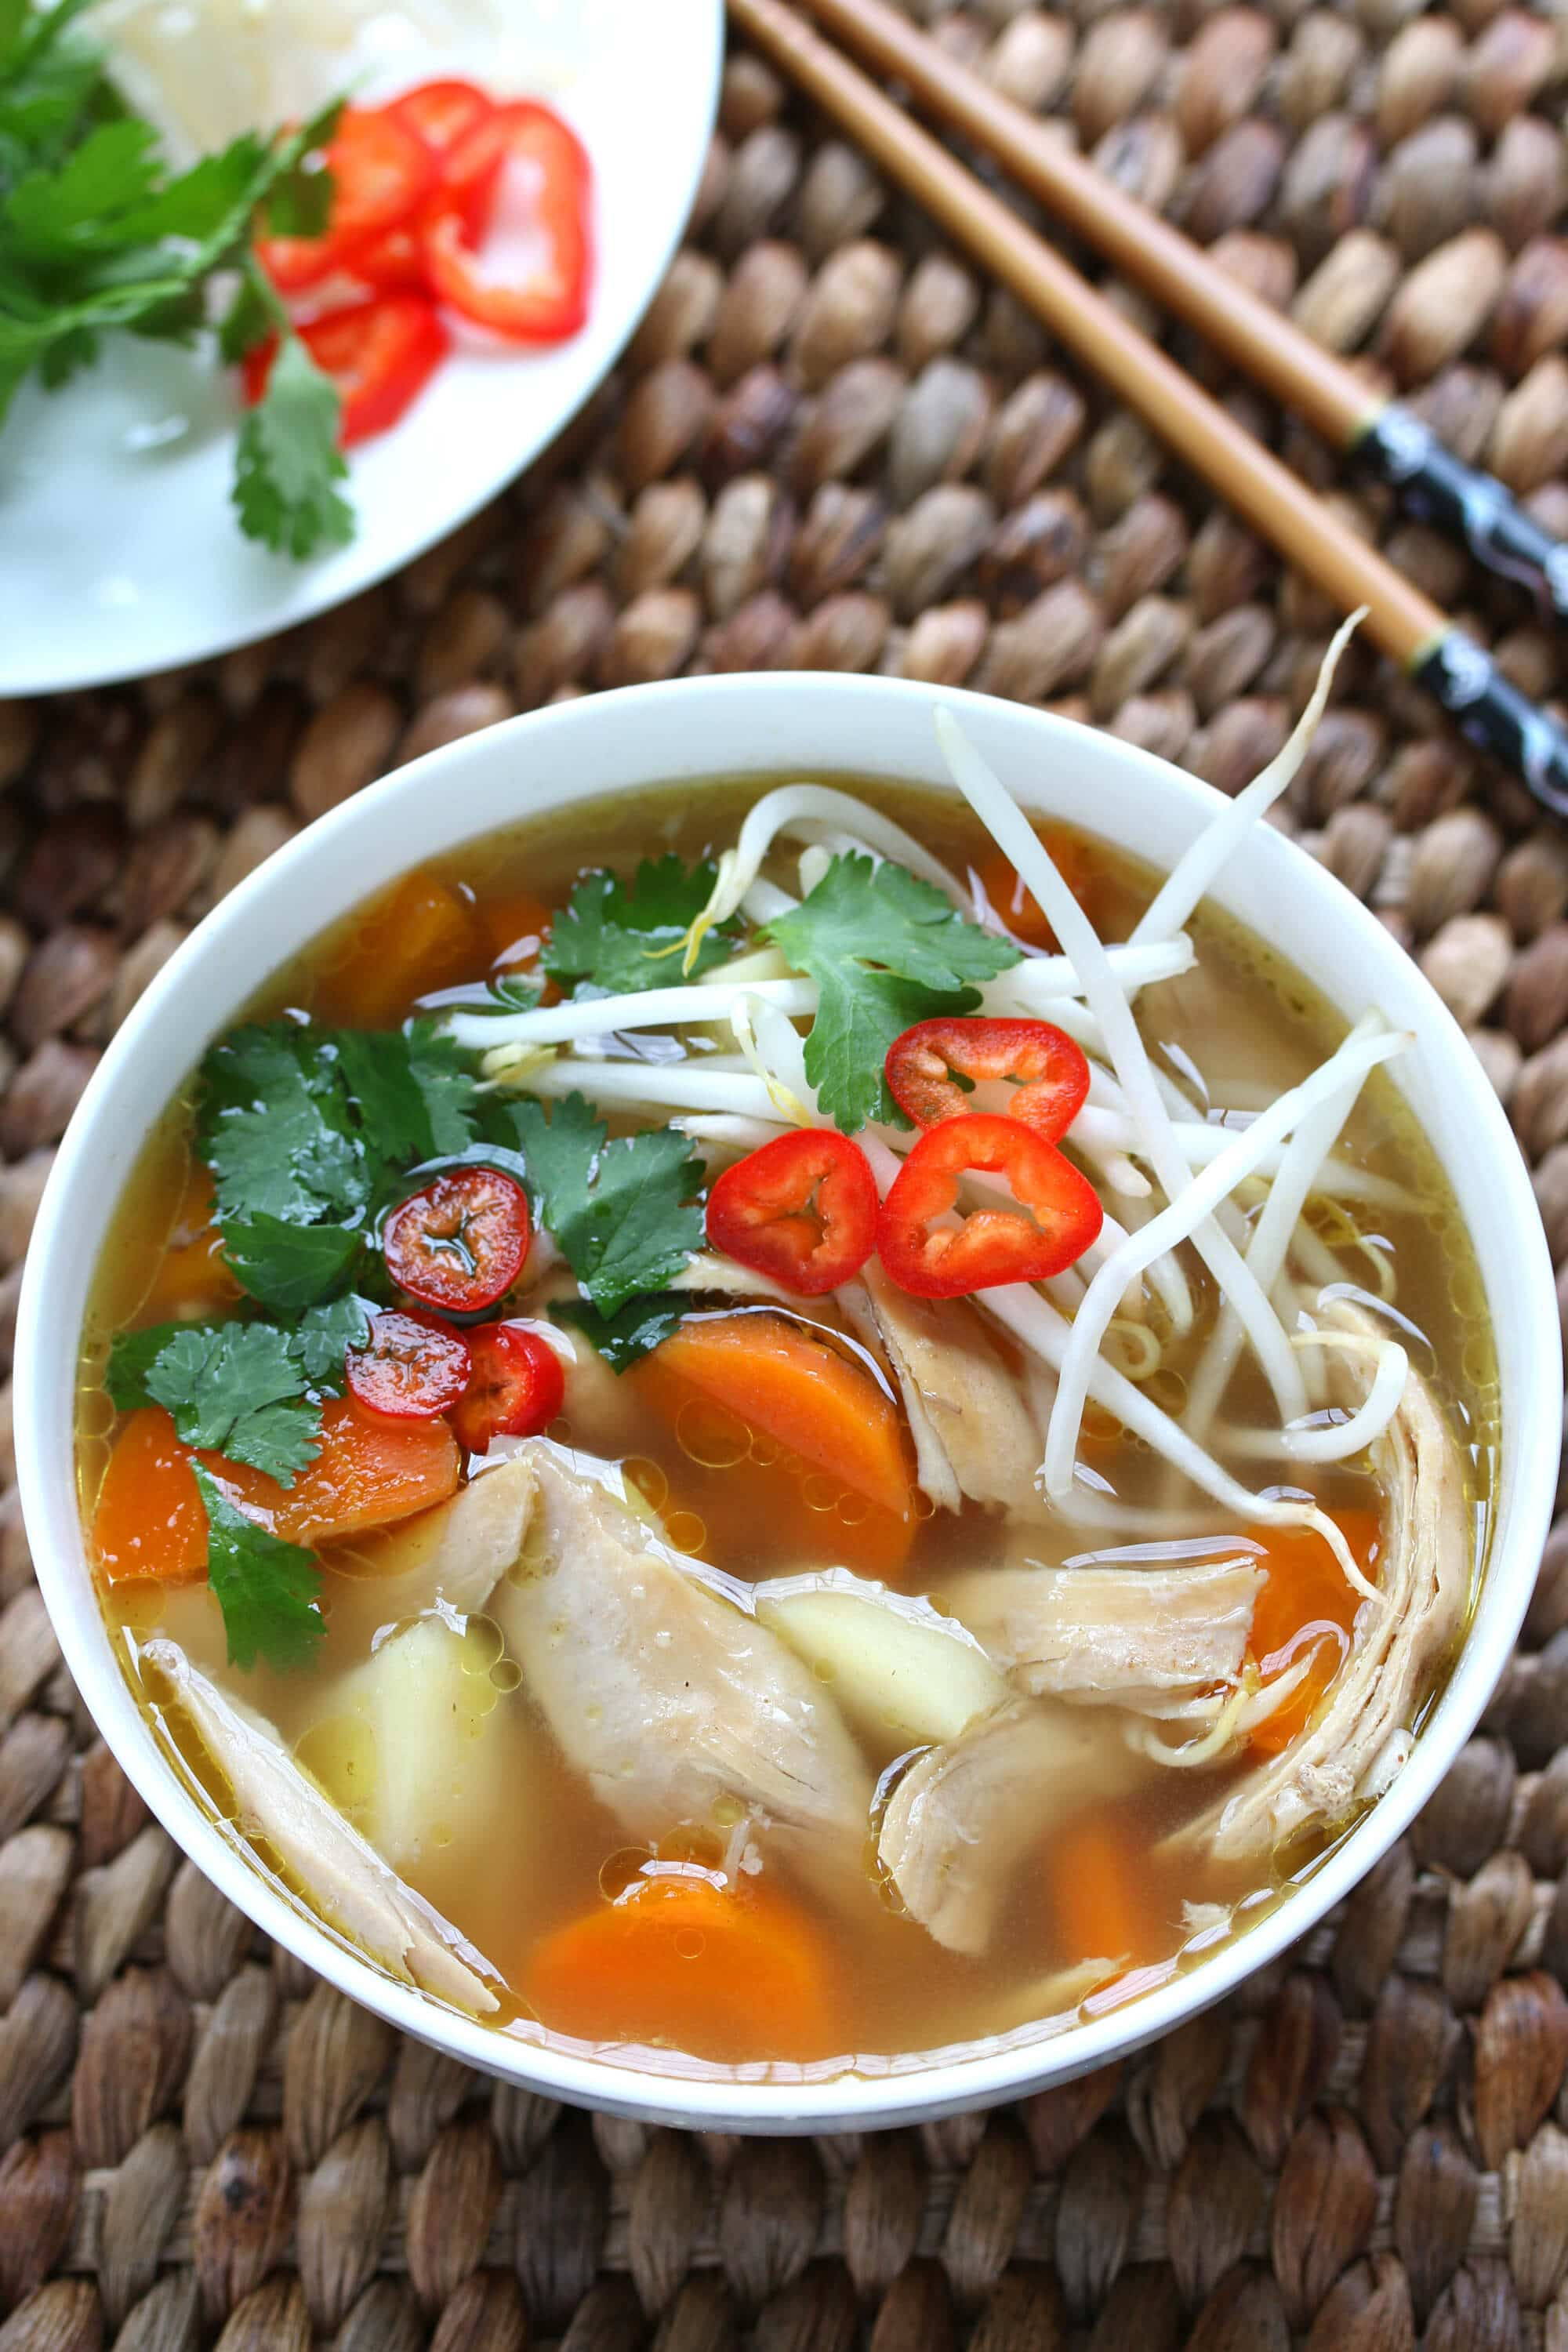 asian spiced chicken vegetable soup recipe chinese indonesian thai  malaysian star anise fennel cinnamon cardamom cloves